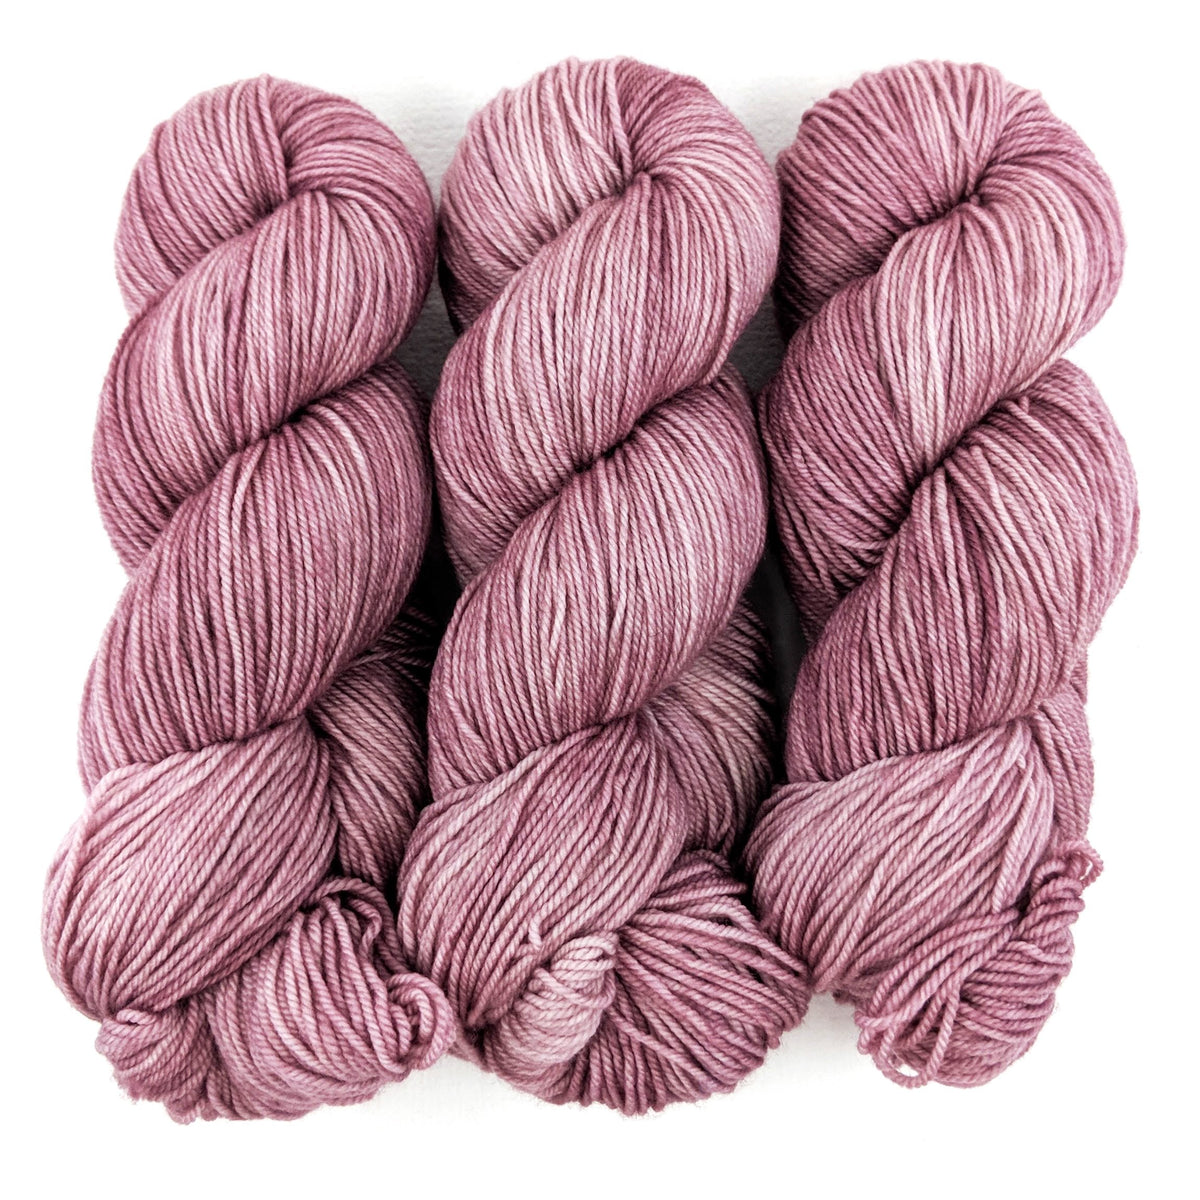 Dusty Rose in Fingering / Sock Weight